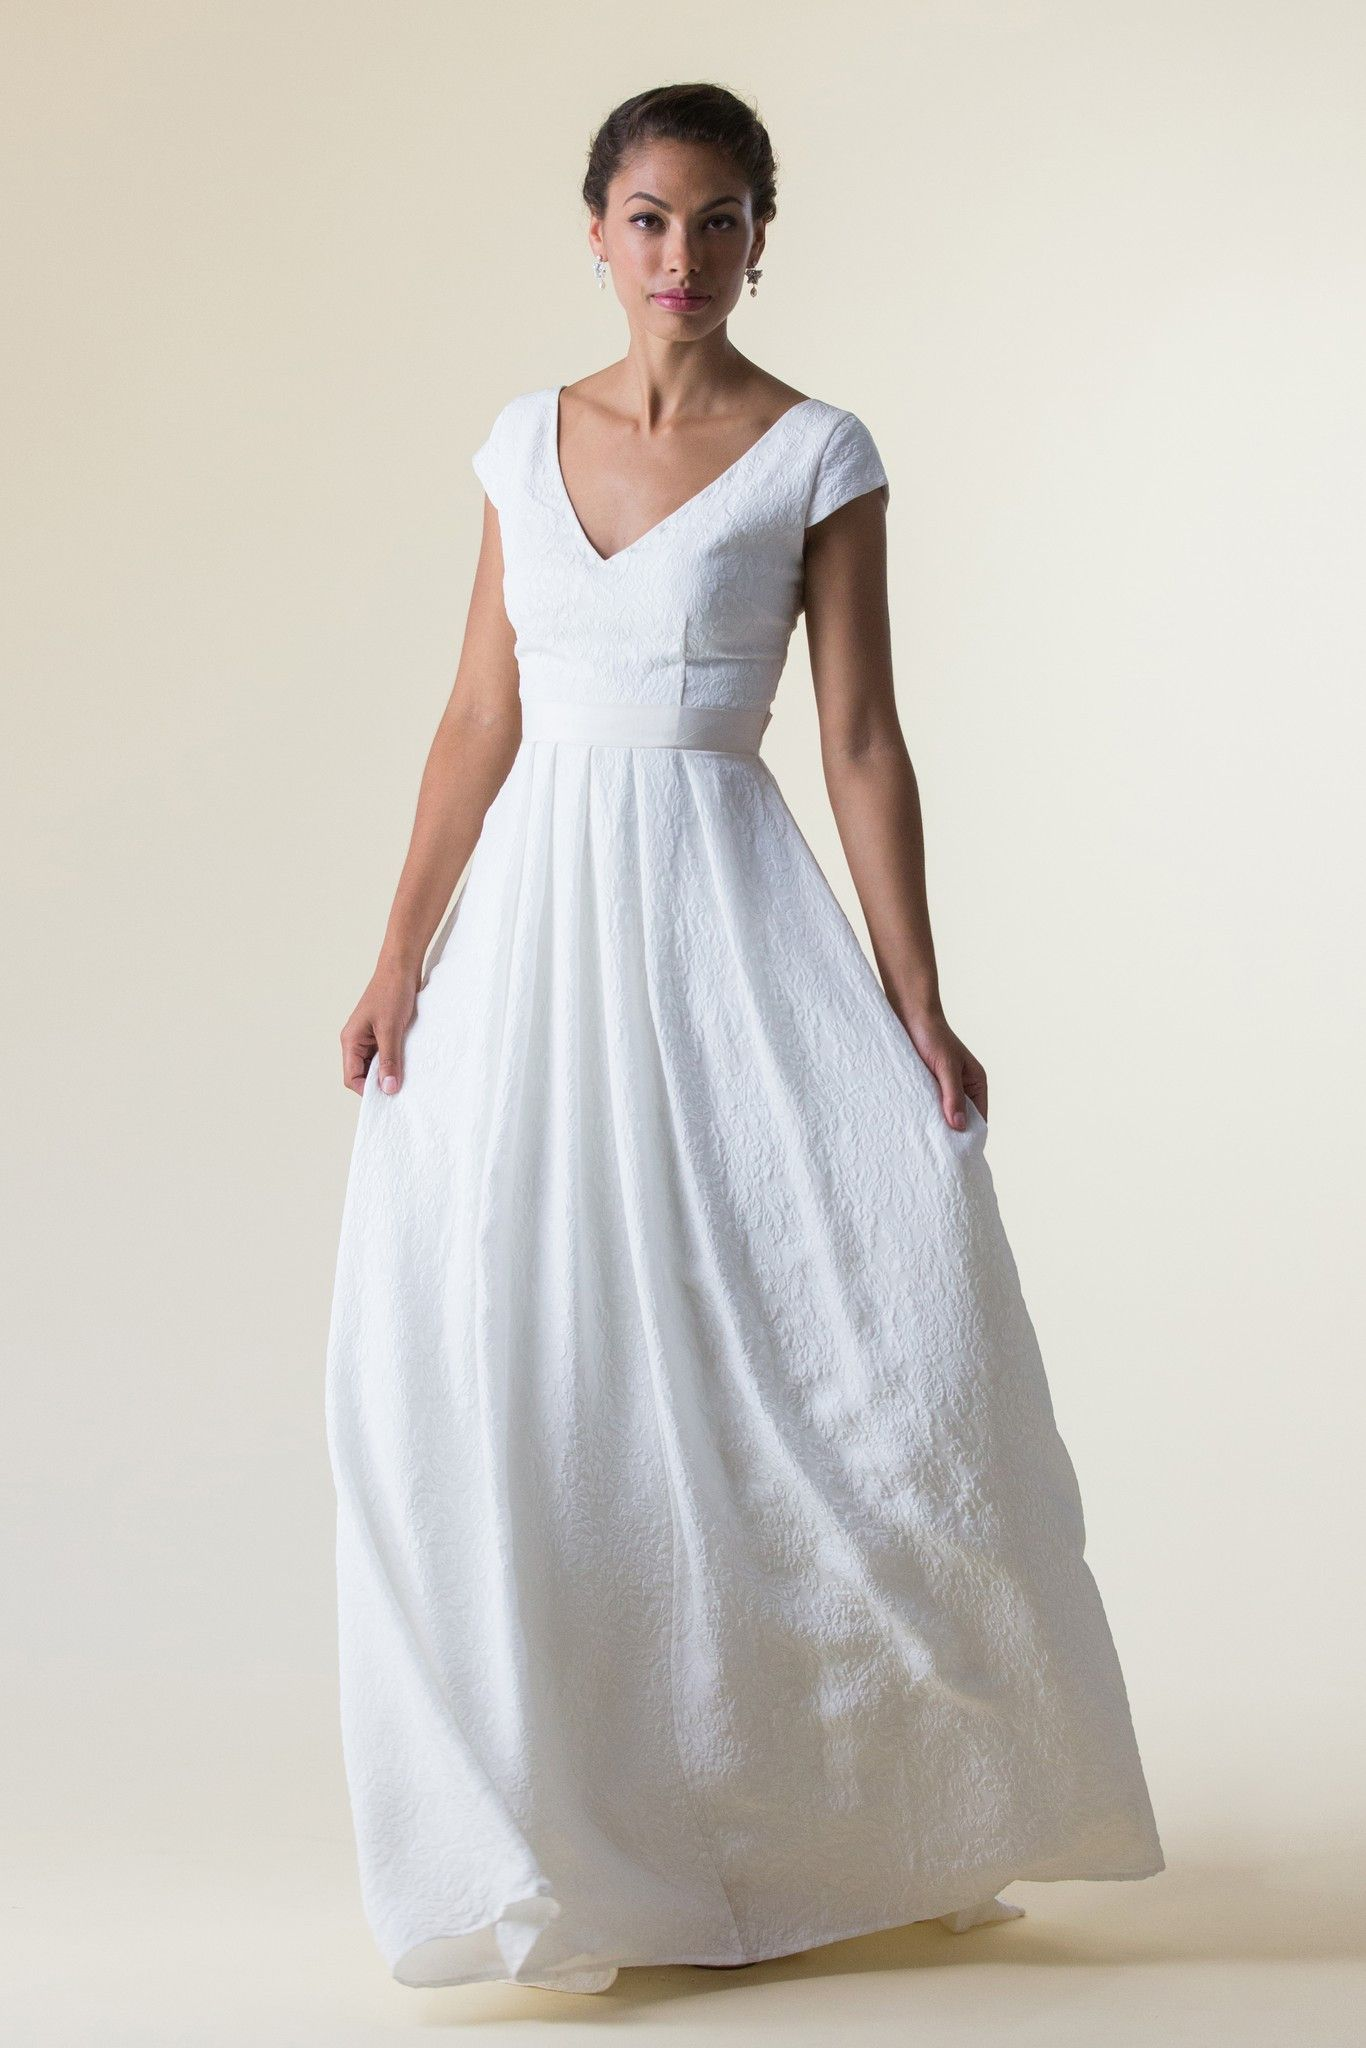 Cap Sleeves Wedding Dresses with Pockets